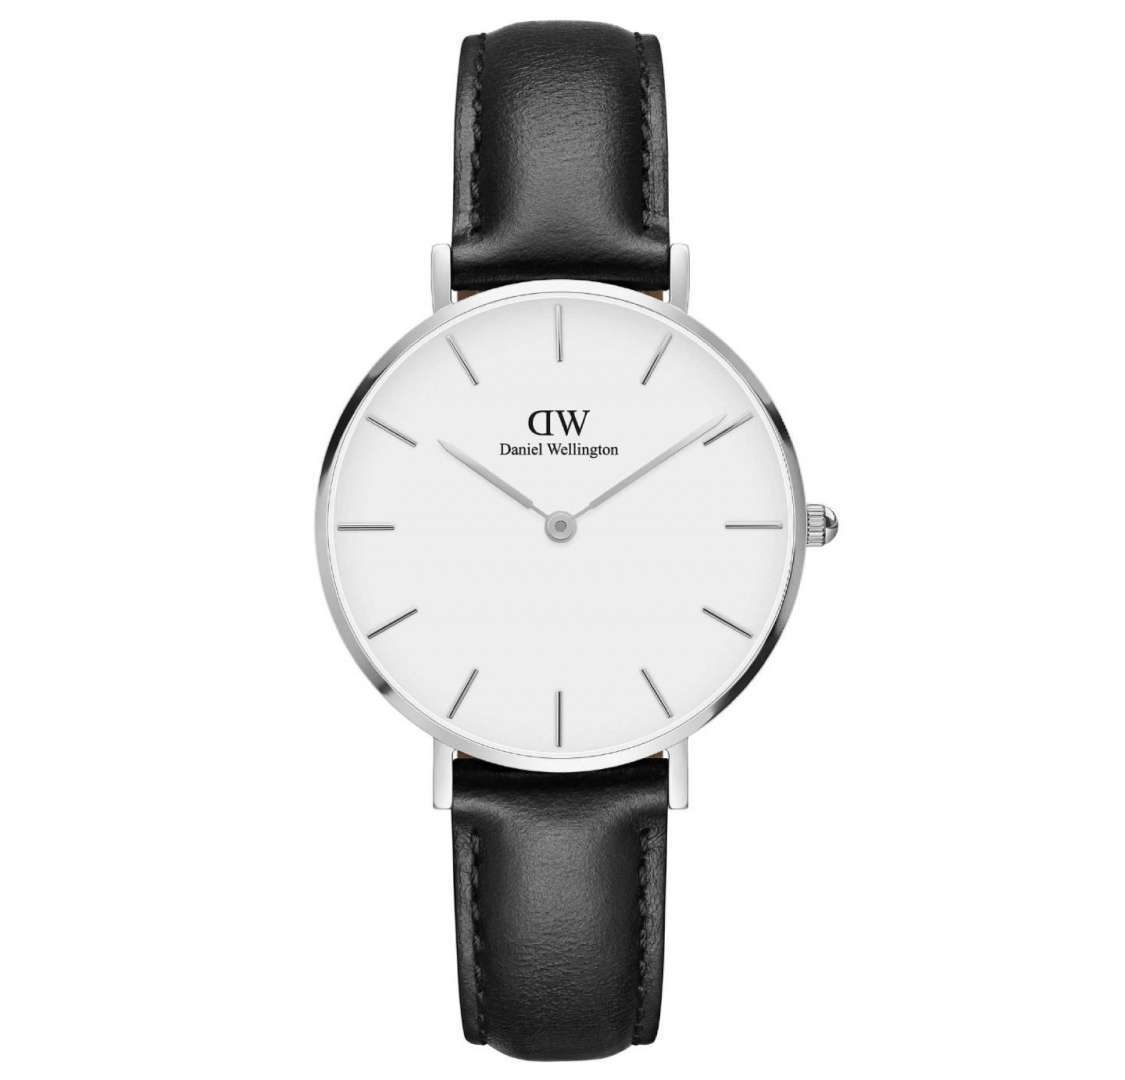 שעון יד אנלוגי daniel wellington DW00100186 דניאל וולינגטון